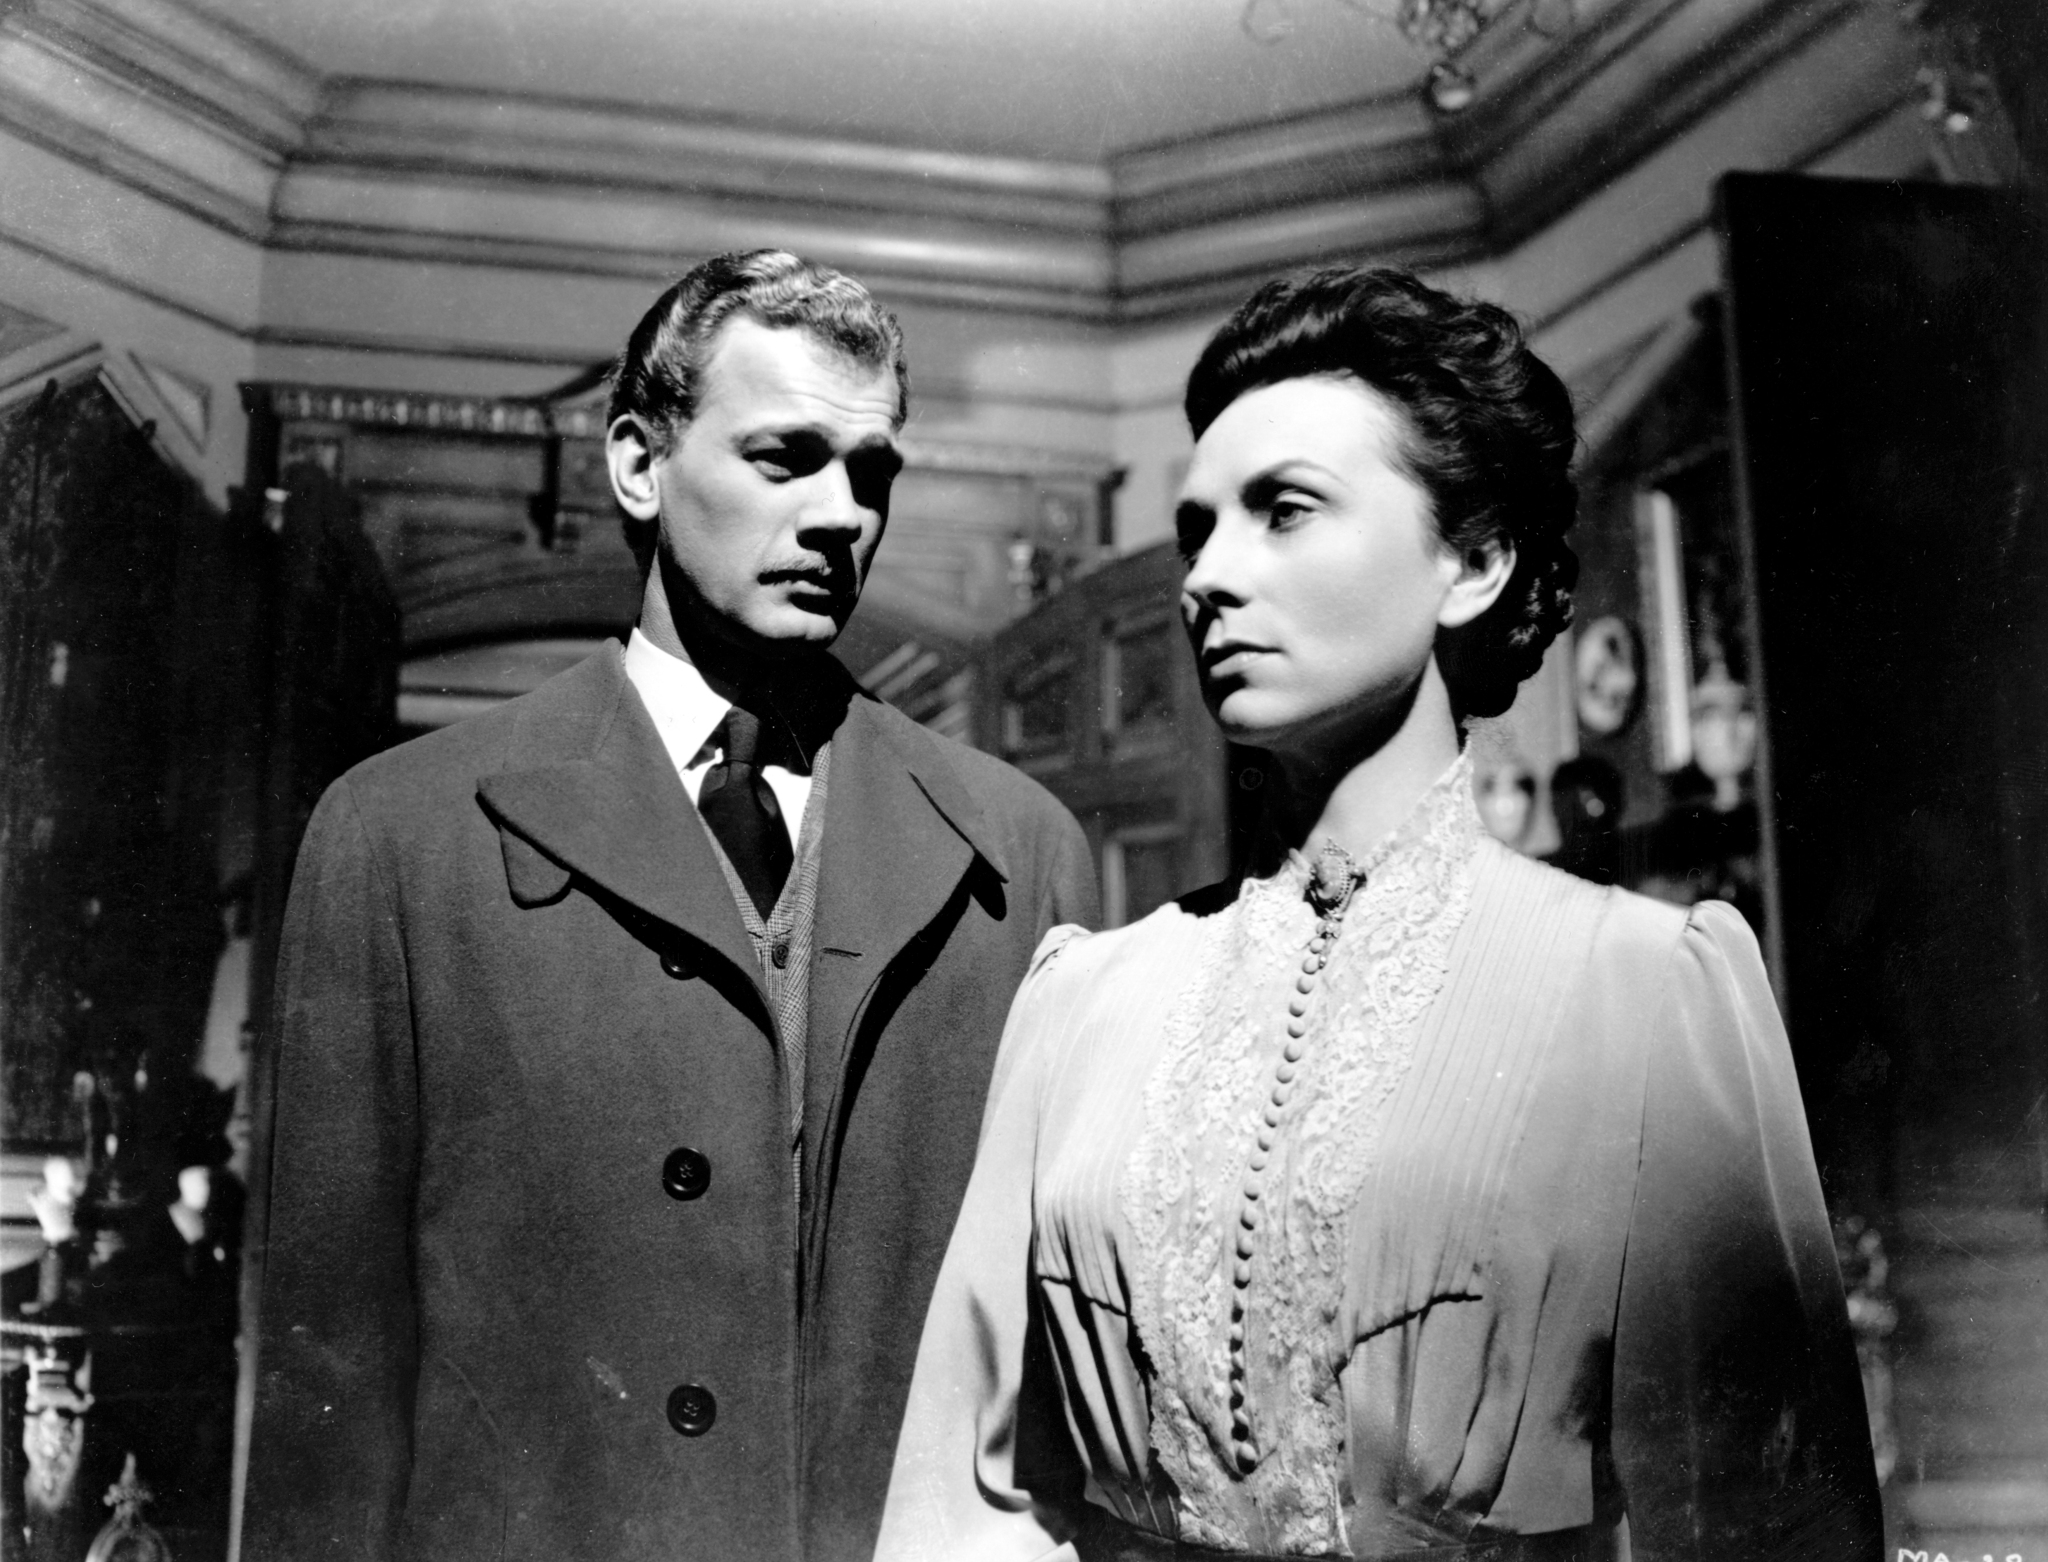 Joseph Cotten and Agnes Moorehead in The Magnificent Ambersons (1942)